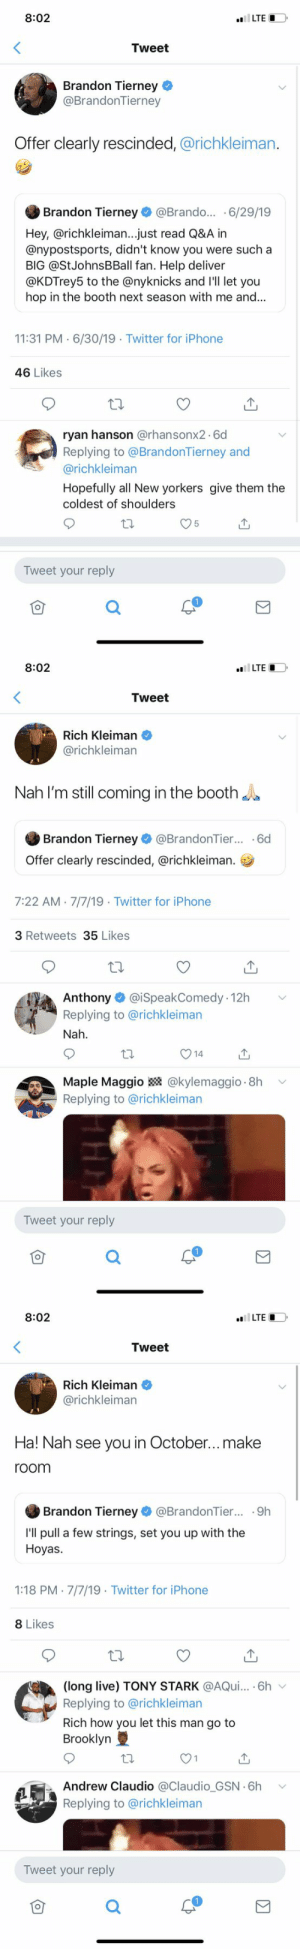 Damn the replies are a mess. This dude doesn't realize NY is gonna have ZERO love for him. Villain in the Knicks community. Not really his fault so I feel bad for him but that's how it goes https://t.co/1I2aXeFnHO: 8:02  LTE  Tweet  Brandon Tierney  @BrandonTierney  Offer clearly rescinded, @richkleiman.  Brandon Tierney @Brando... .6/29/19  Hey,@richkleiman... just read Q&A in  @nypostsports, didn't know you were such a  BIG @StJohnsBBall fan. Help deliver  @KDTrey5 to the @nyknicks and 'll let you  hop in the booth next season with me and...  11:31 PM 6/30/19 Twitter for iPhone  46 Likes  ryan hanson @rhansonx26d  Replying to @BrandonTierney and  @richkleiman  Hopefully all New yorkers give them the  coldest of shoulders  5  Tweet your reply   8:02  LTE  Tweet  Rich Kleiman  @richkleiman  Nah I'm still coming in the booth  Brandon Tierney @BrandonTier... 6d  Offer clearly rescinded, @richkleiman.  7:22 AM 7/7/19 Twitter for iPhone  3 Retweets35 Likes  Anthony @iSpeakComedy 12h  Replying to @richkleiman  Nah  14  @kylemaggio 8h  Maple Maggio  Replying to @richkleiman  Tweet your reply   8:02  LTE  Tweet  Rich Kleiman  @richkleiman  Ha! Nah see you in October...make  room  Brandon Tierney @BrandonTier... .9h  I'll pull a few strings, set you up with the  Hoyas  1:18 PM 7/7/19 Twitter for iPhone  8 Likes  (long live) TONY STARK @AQui... .6h  Replying to @richkleiman  Rich how you let this man go to  Brooklyn  1  Andrew Claudio @Claudio_GSN 6h  Replying to @richkleiman  Tweet your reply Damn the replies are a mess. This dude doesn't realize NY is gonna have ZERO love for him. Villain in the Knicks community. Not really his fault so I feel bad for him but that's how it goes https://t.co/1I2aXeFnHO